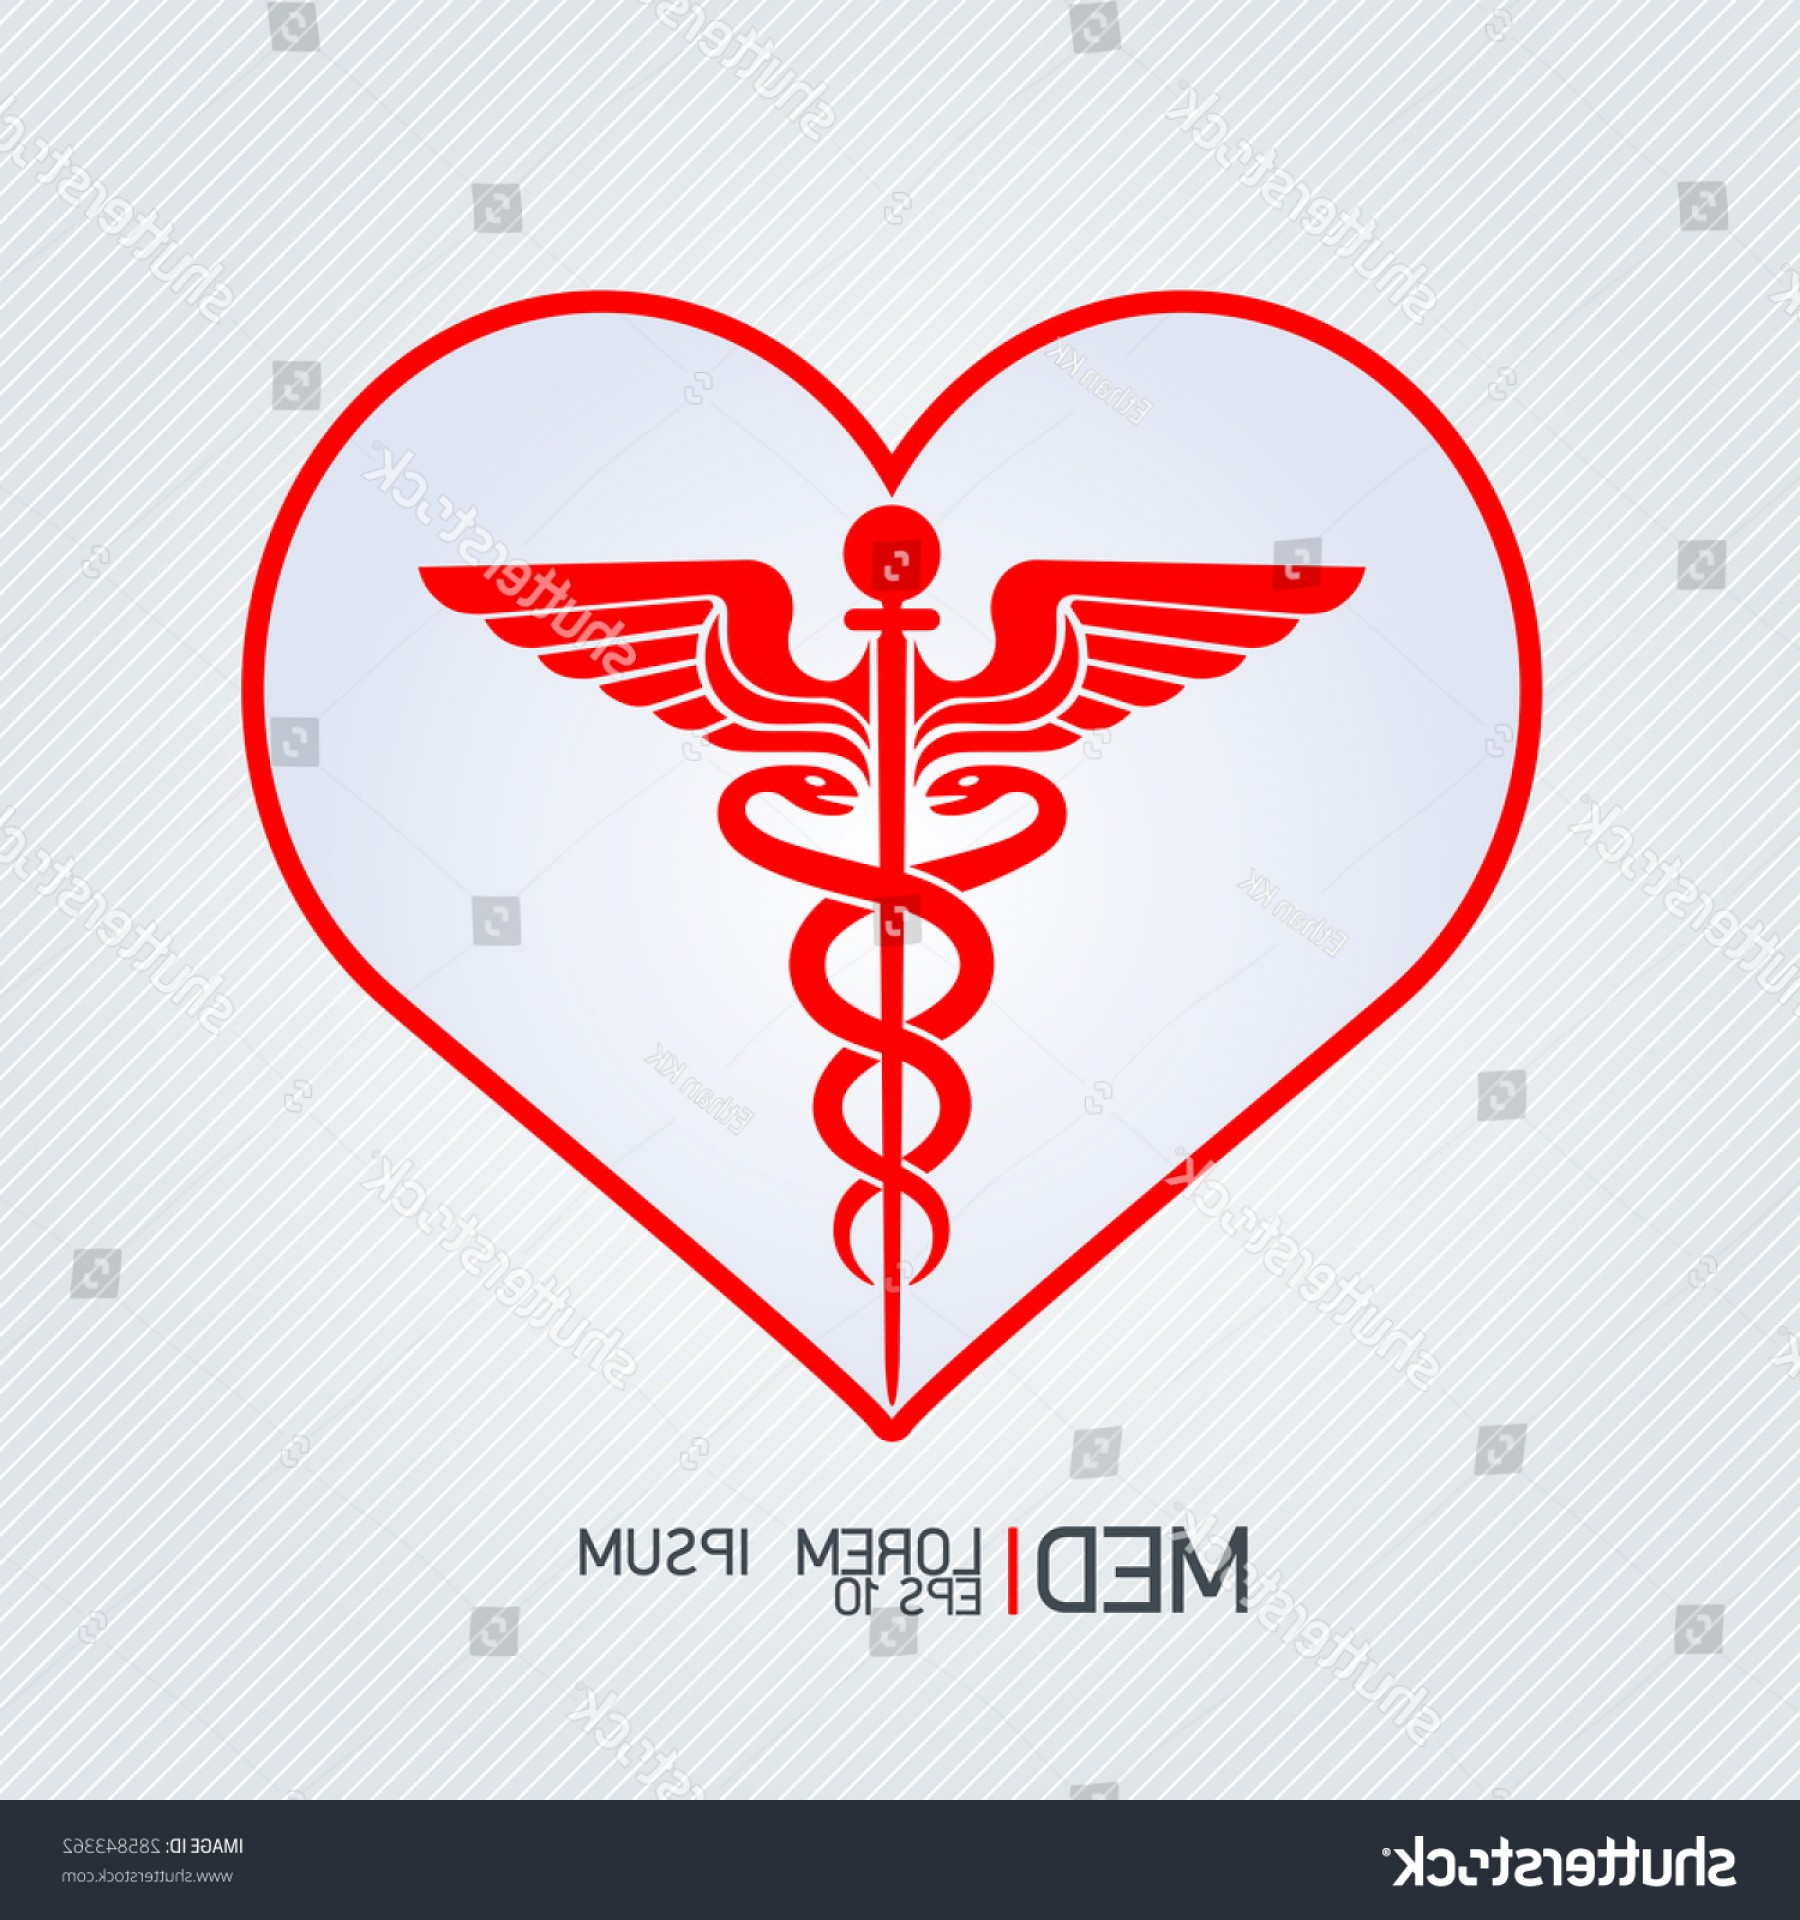 With Red Caduceus Vector: Caduceus Sign Red Heart Medical Icons